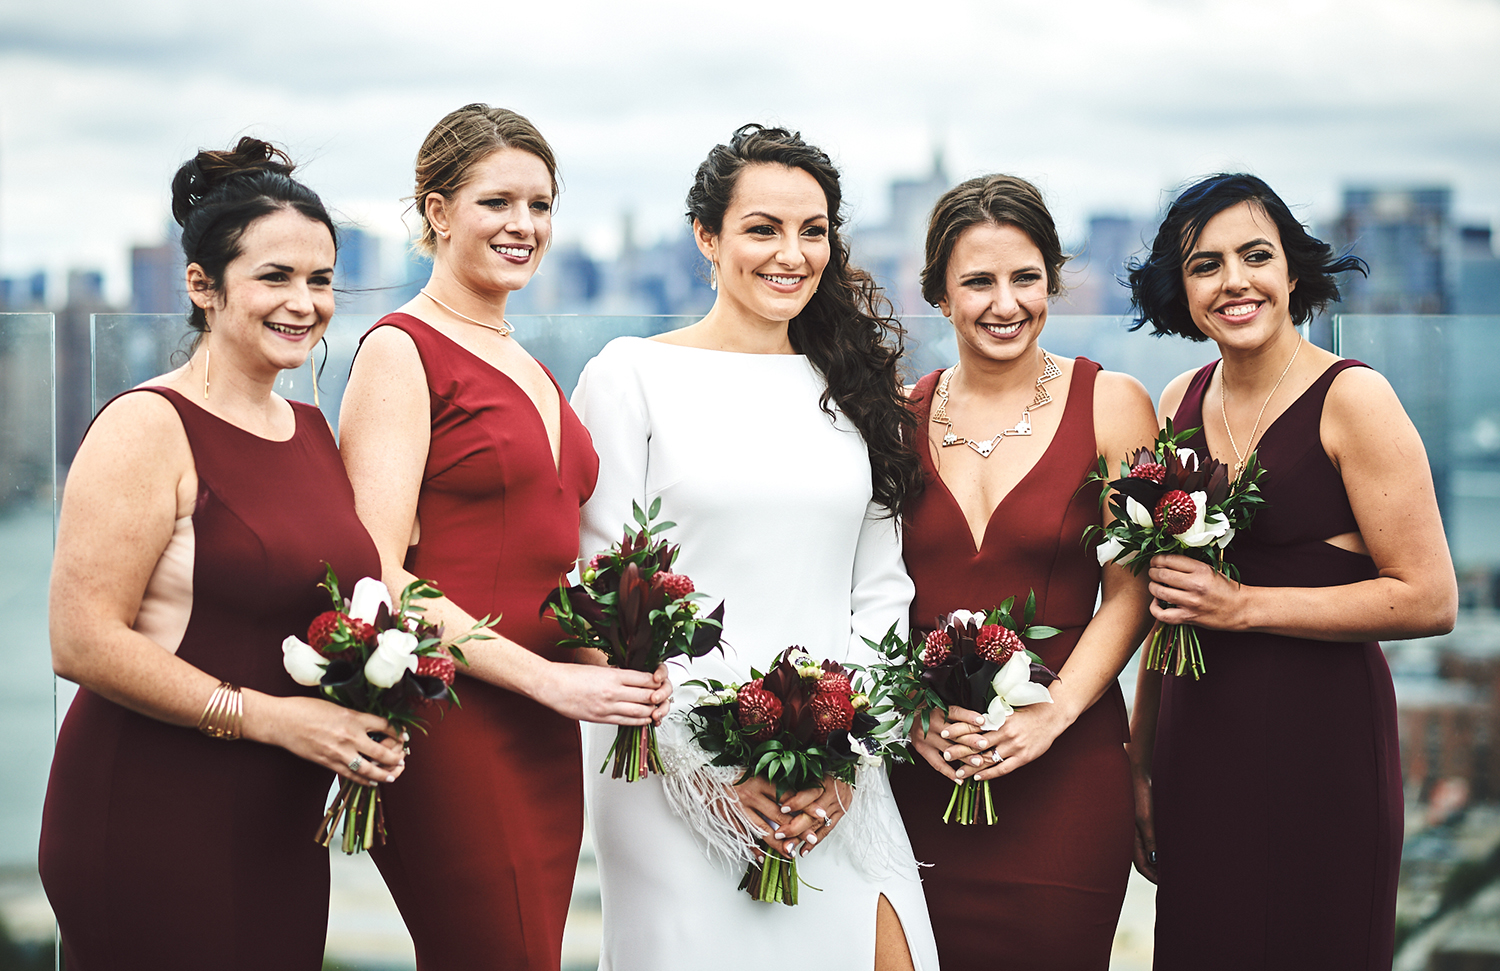 170930_WilliamValeWeddingPhotography_BrooklynWeddingPhotographer_By_BriJohnsonWeddings_0050.jpg